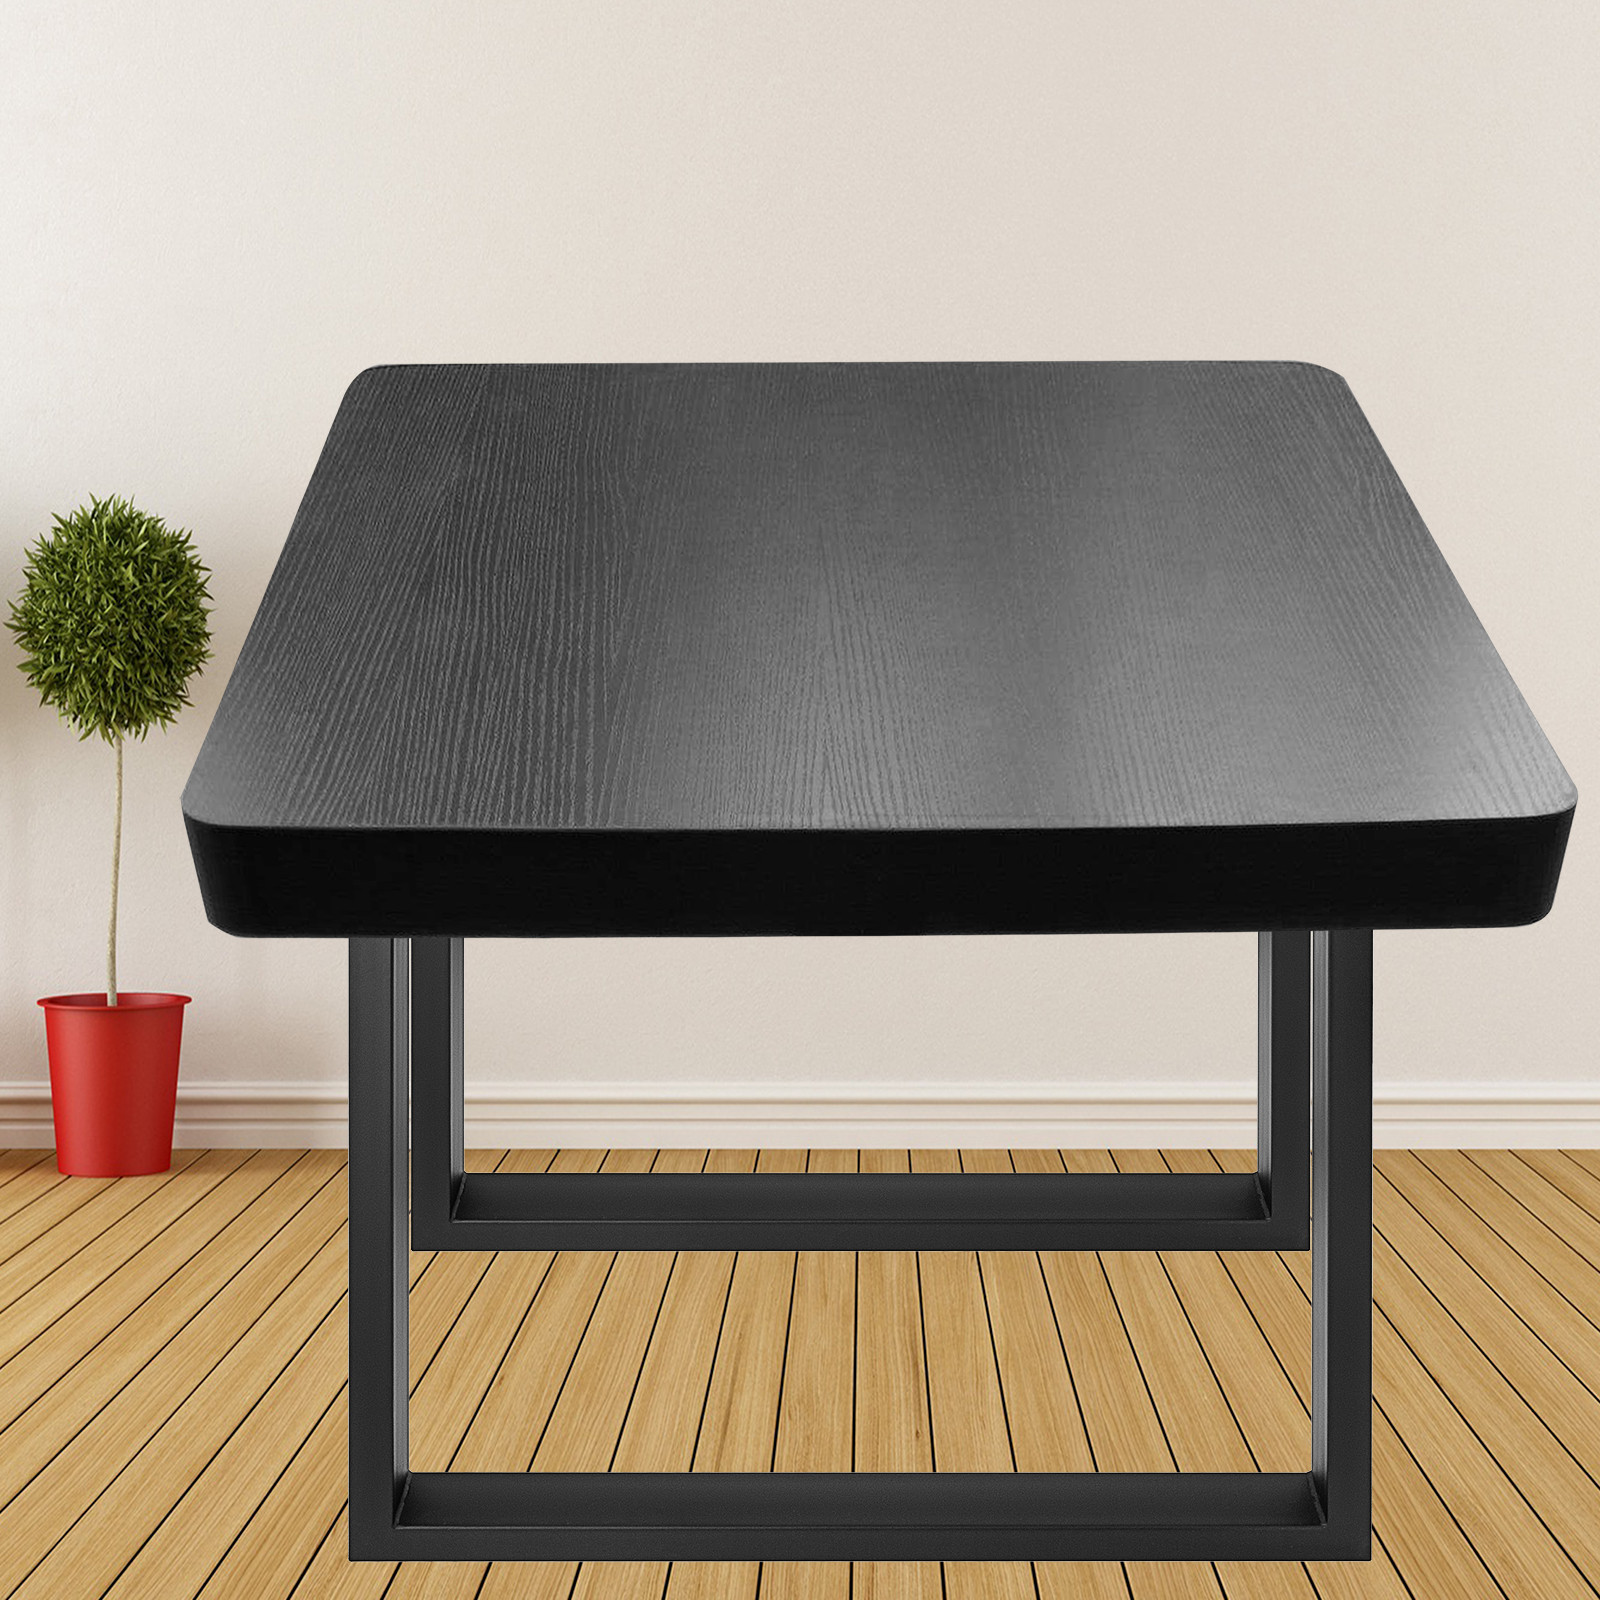 2X-Table-Legs-Black-Dining-Table-Leg-Heavy-Duty-Computer-Desk-Legs-Rectangle thumbnail 95